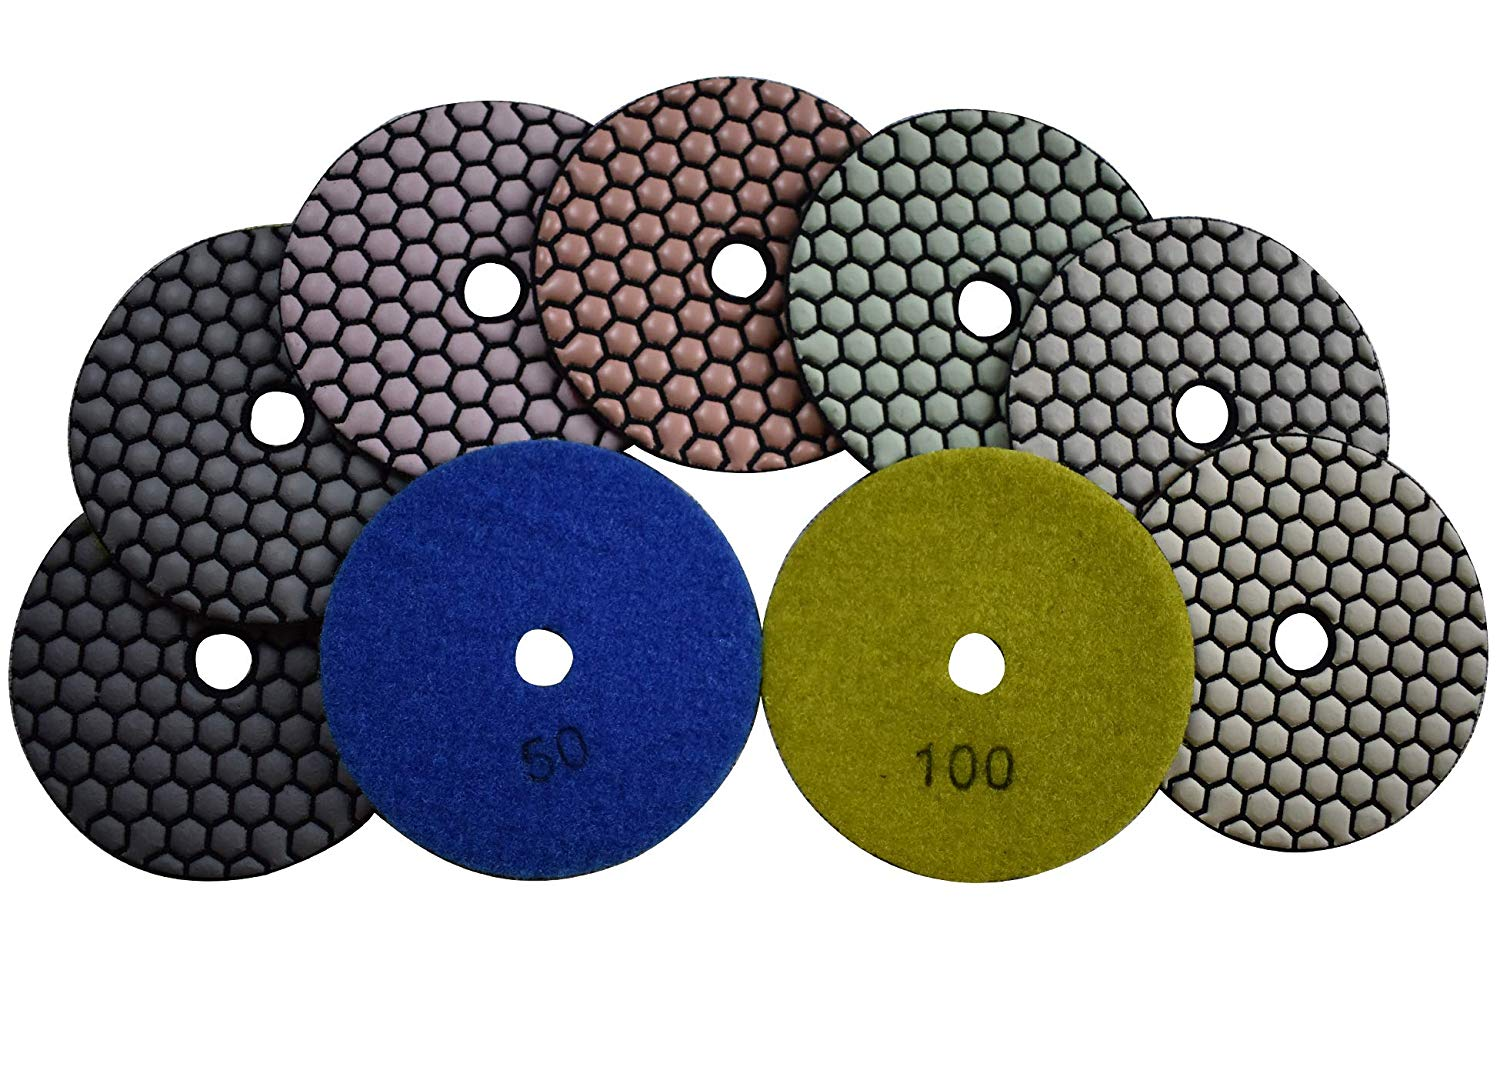 Konfor 7 Pieces of 4 inch Premium Grade Dry Diamond Polishing Pads for Marble Granite Concrete Countertop Glass Engineered Stone